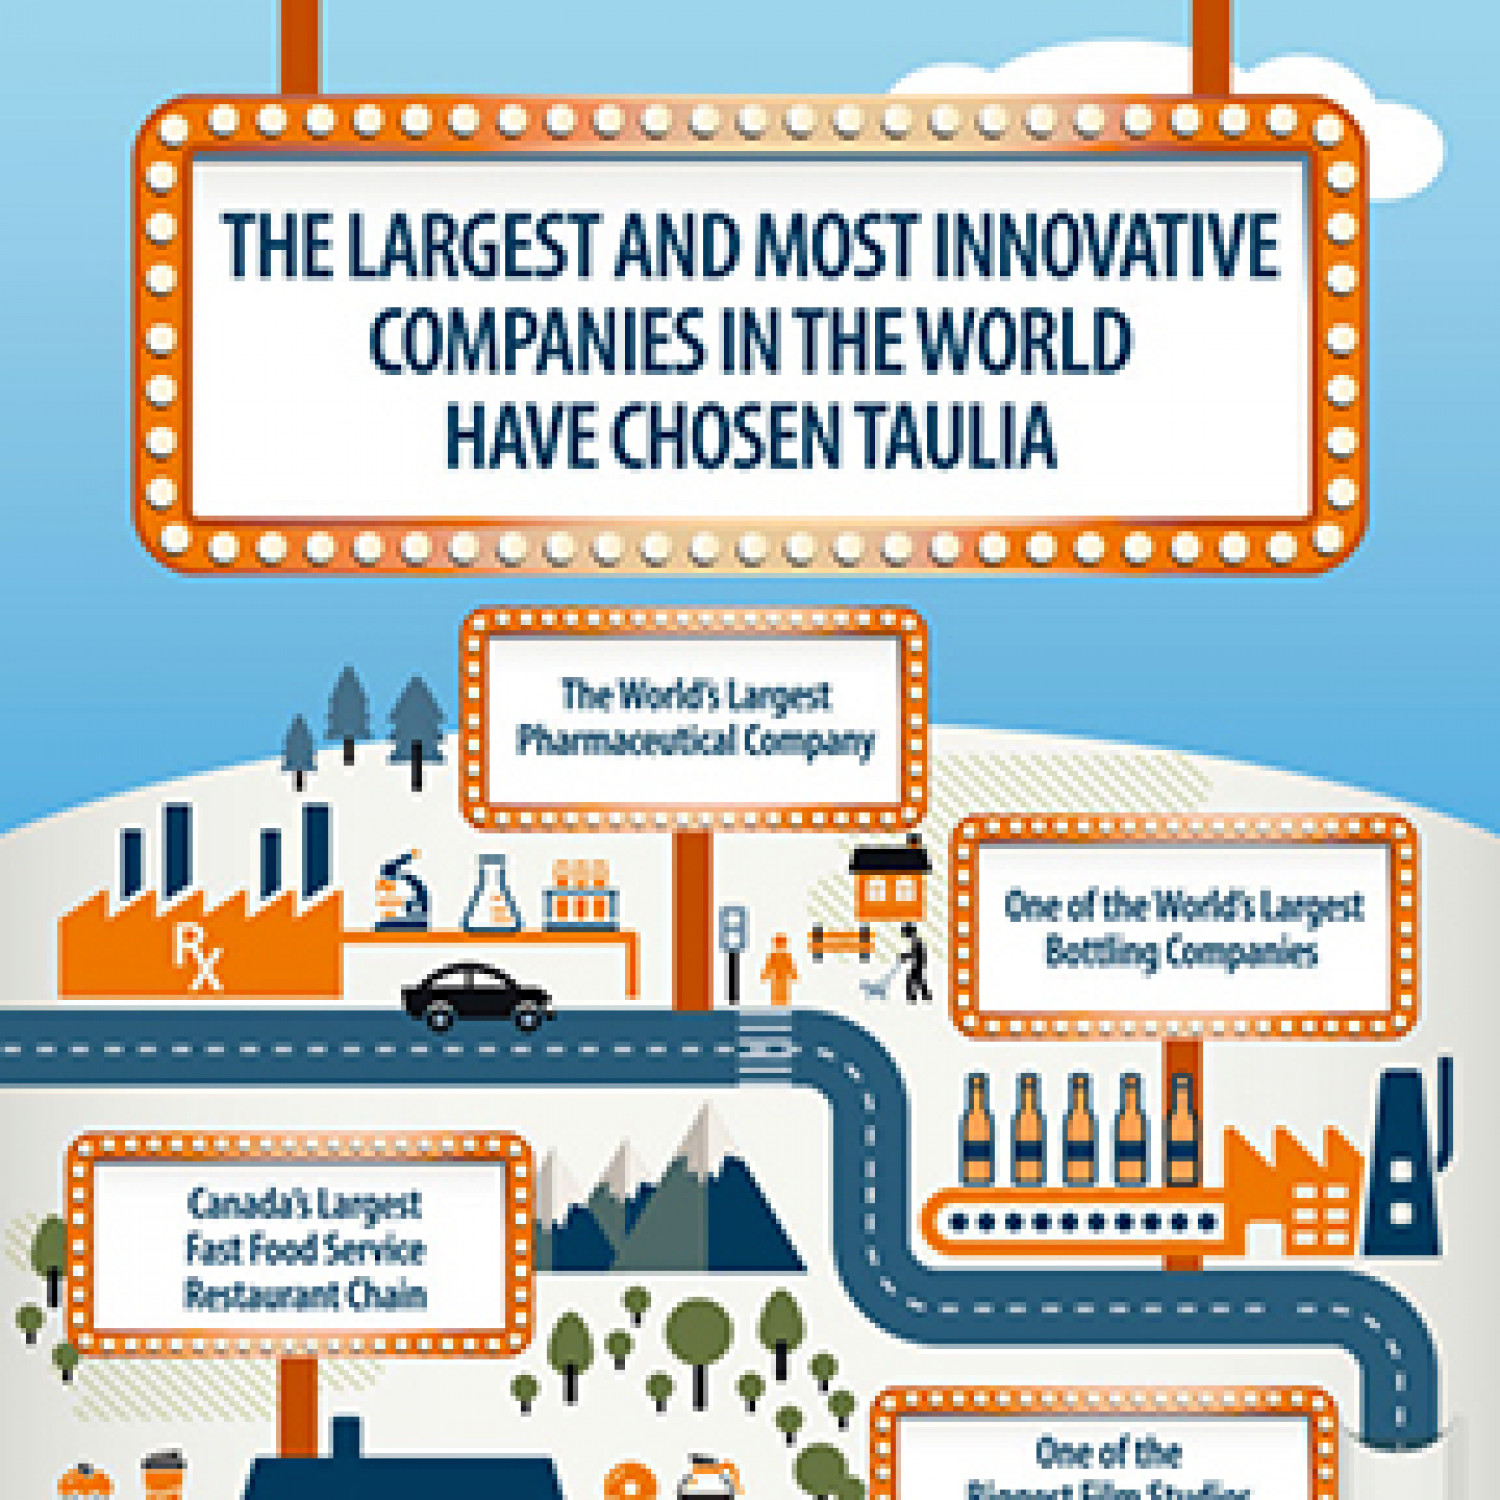 The Largest and Most Innovative Companies in the World Have Chosen Taulia Infographic